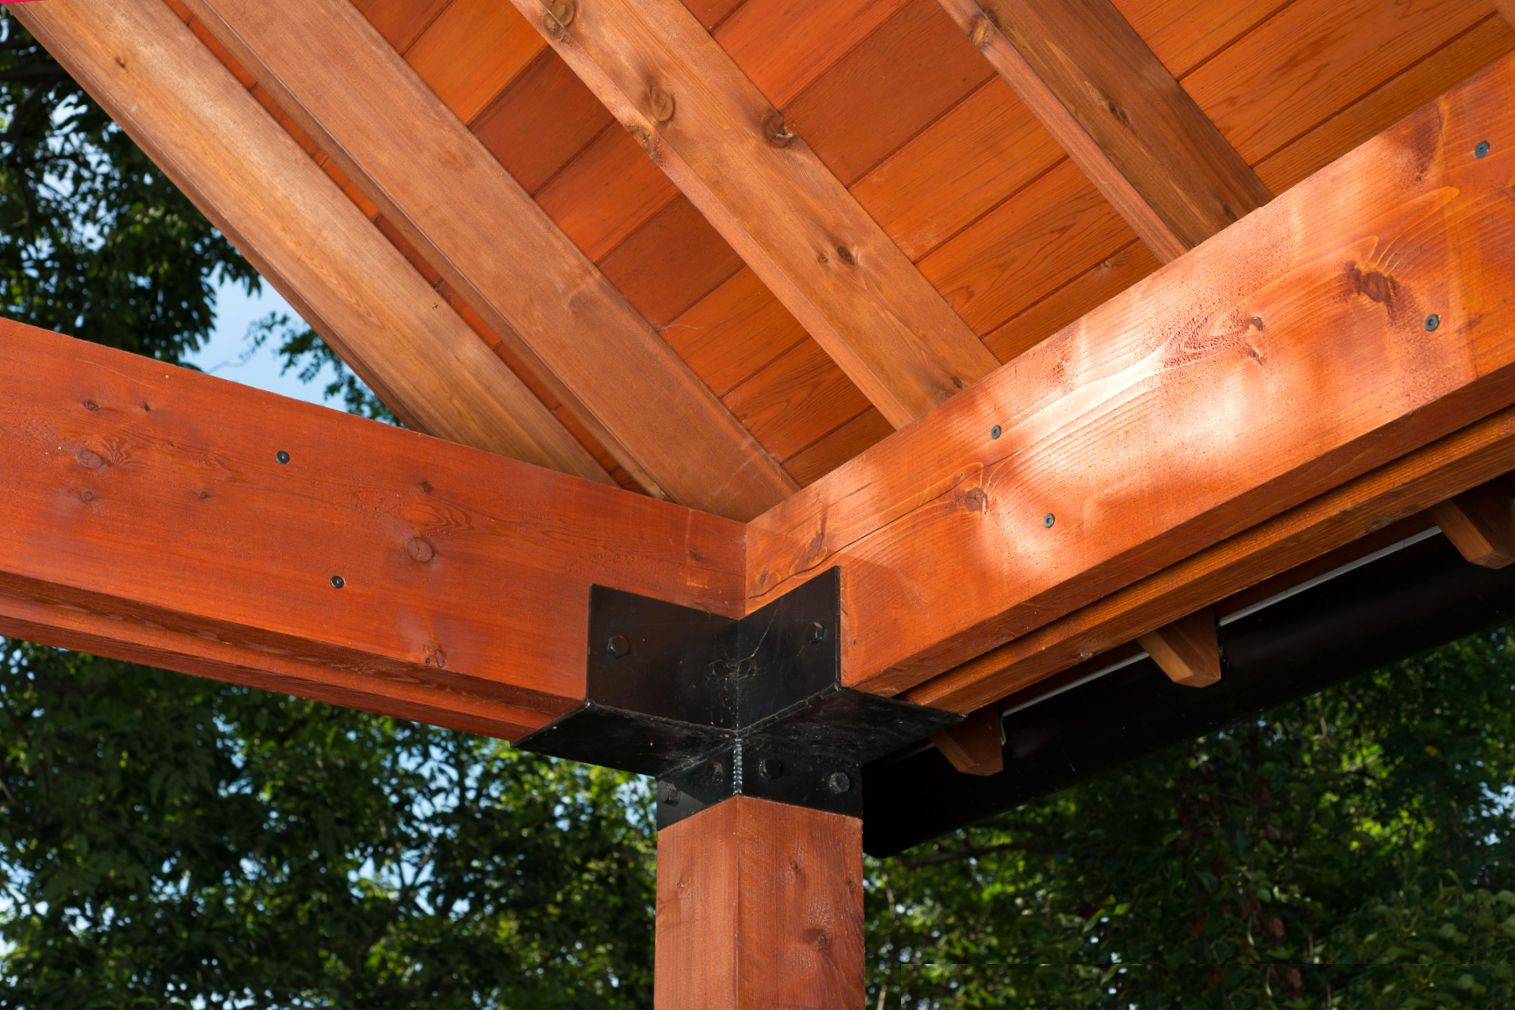 Cedar Lumber 3x6 Cedar Beams Supported By 6x6 Cedar Posts Timber Frame Accent To Cedar Sided Home In N Cedar Lumber Cedar Wood Beams Western Red Cedar Lumber